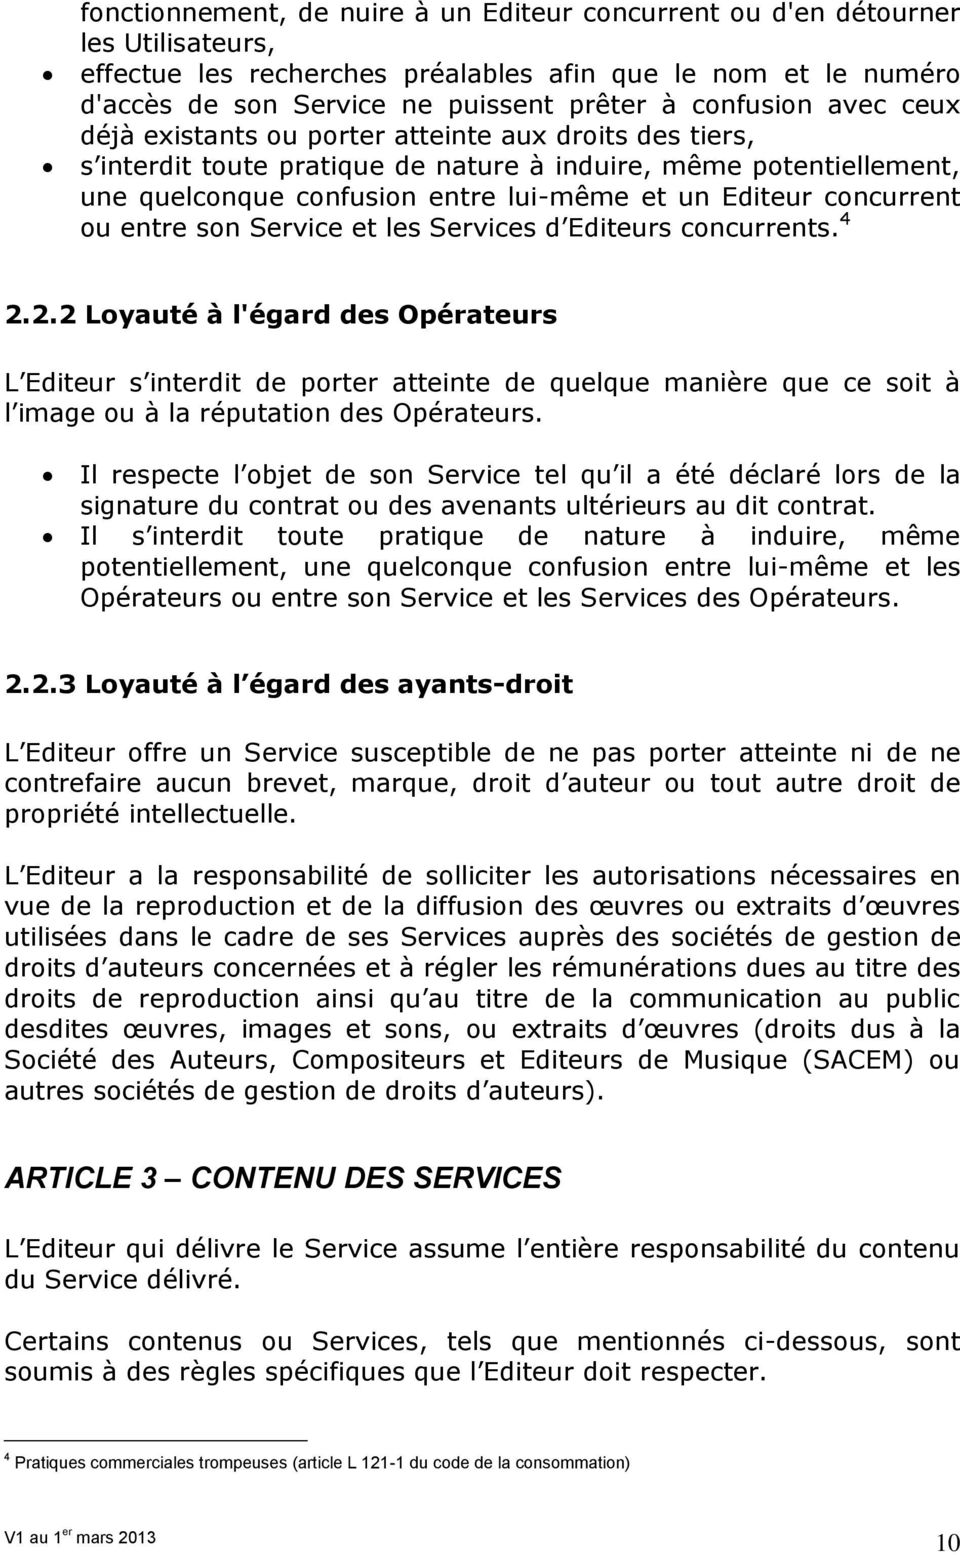 concurrent ou entre son Service et les Services d Editeurs concurrents. 4 2.